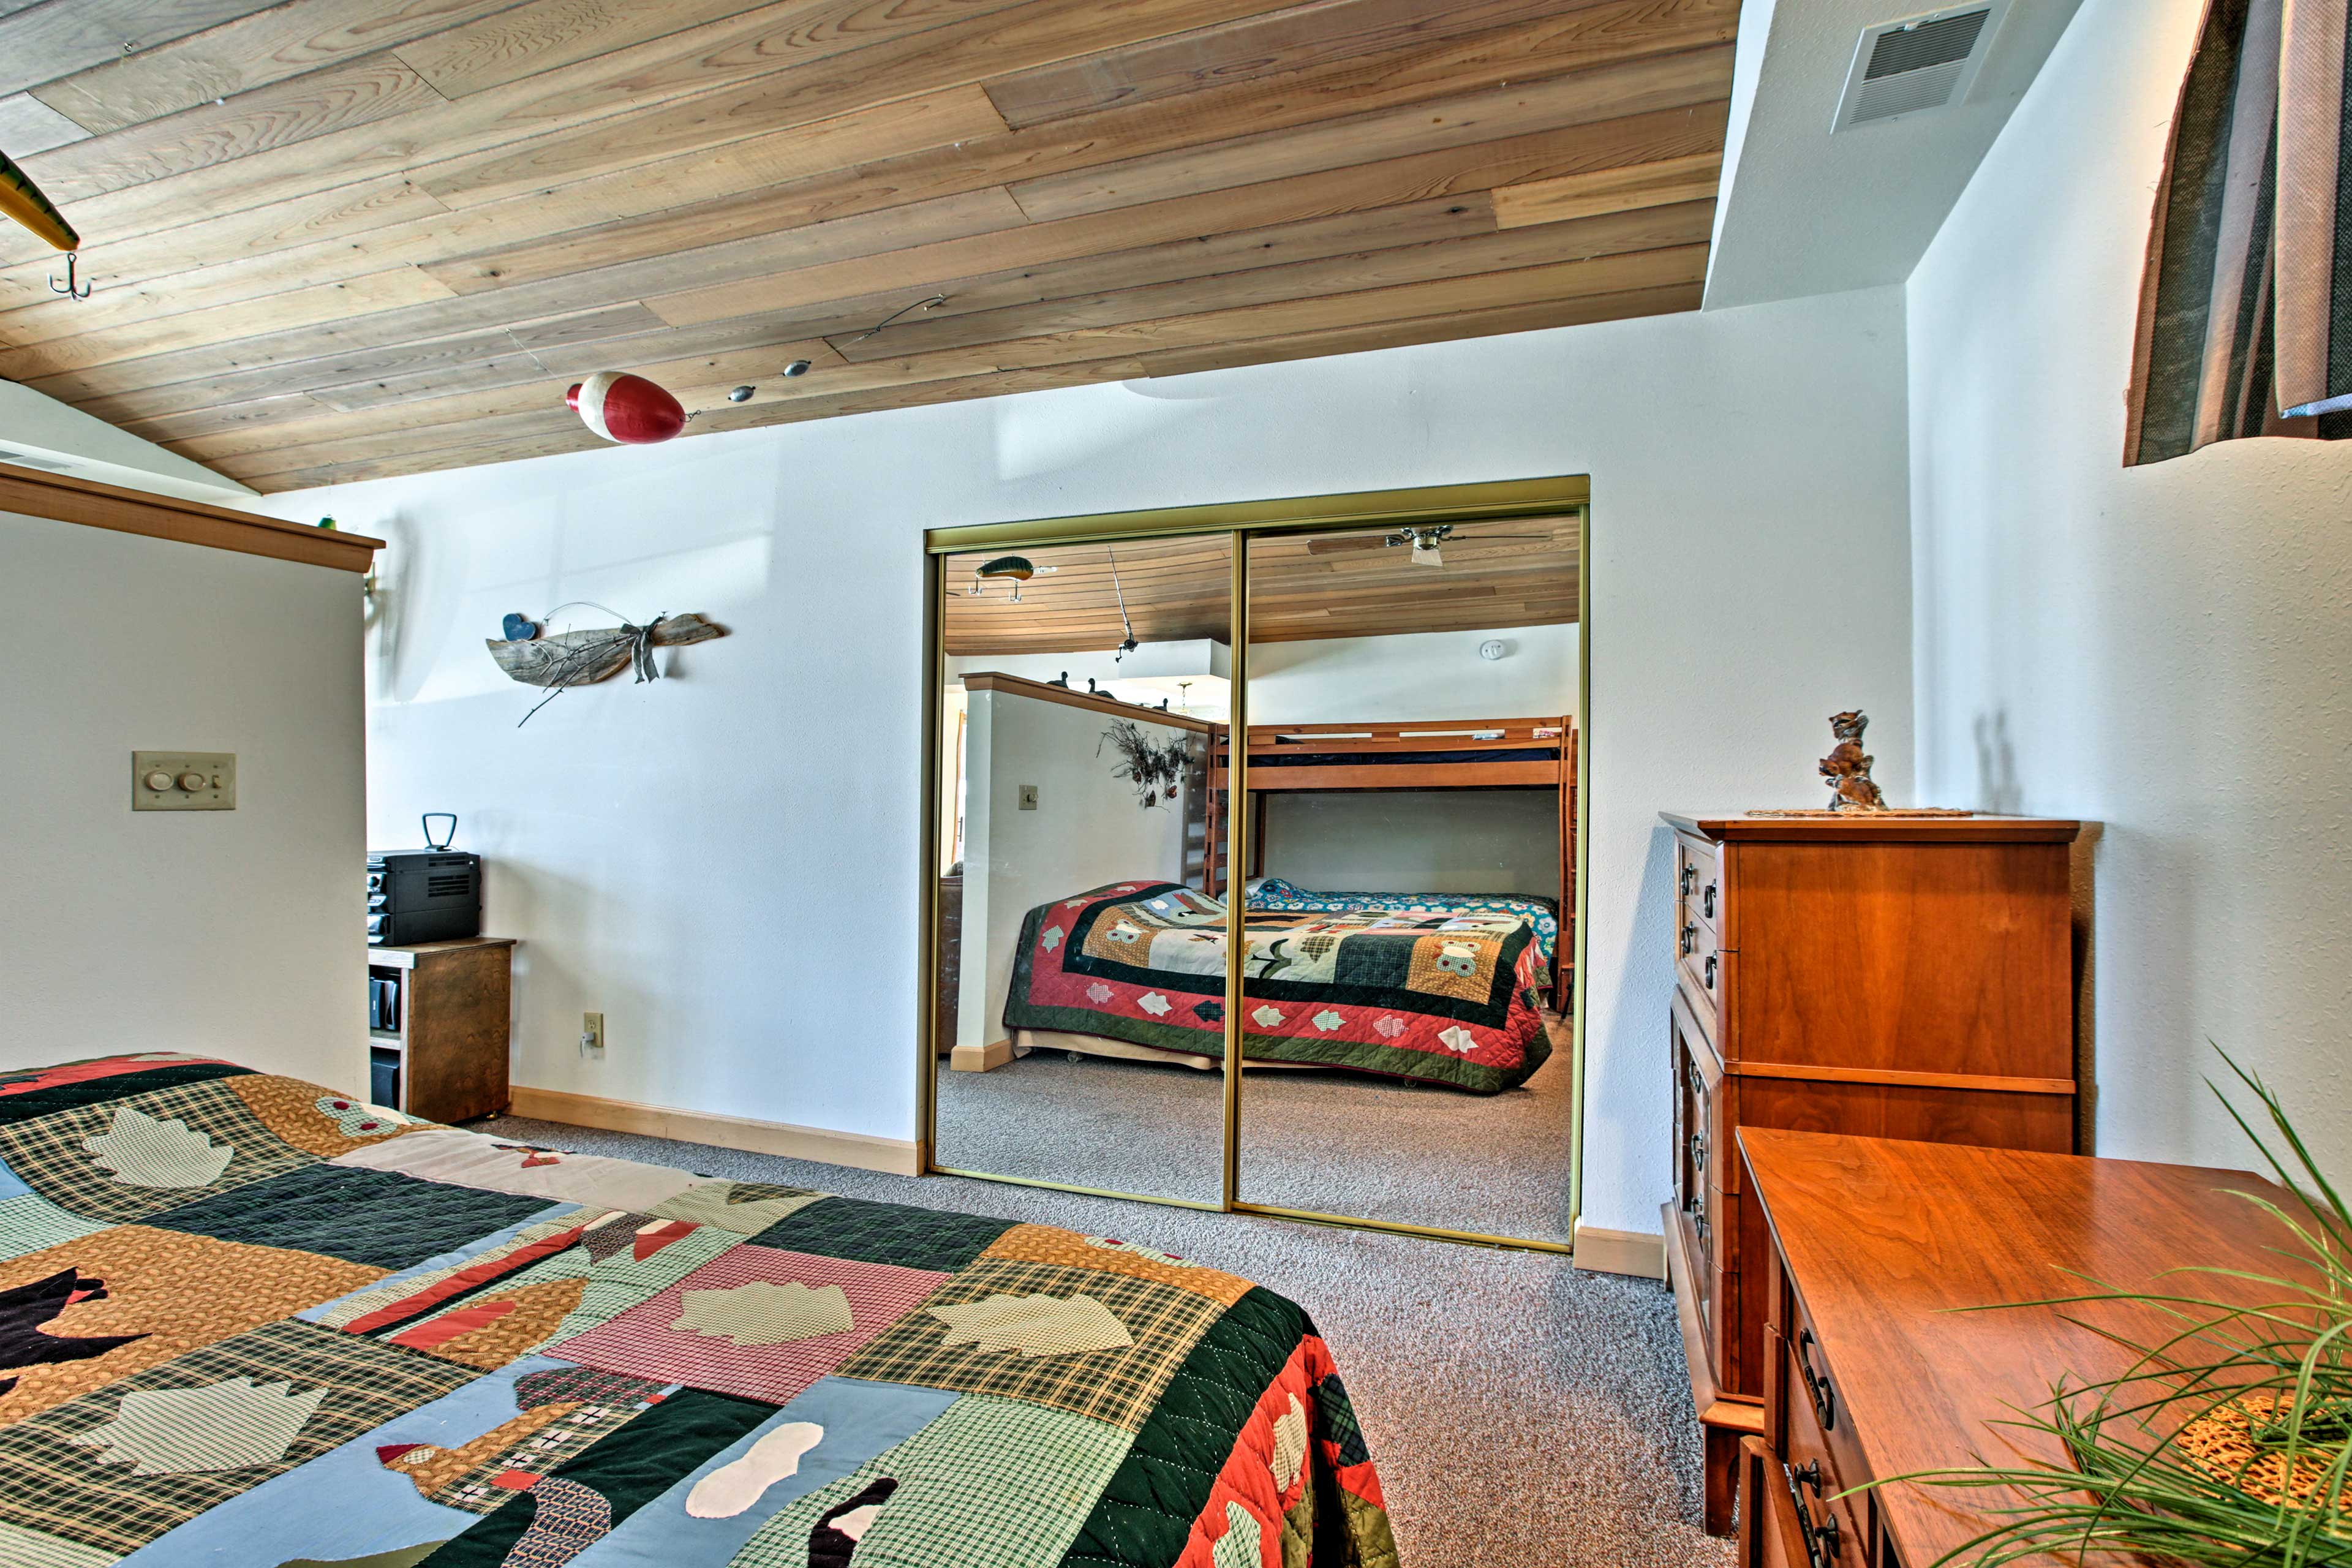 The bedroom has a queen bed and a twin-over-twin bunk bed.